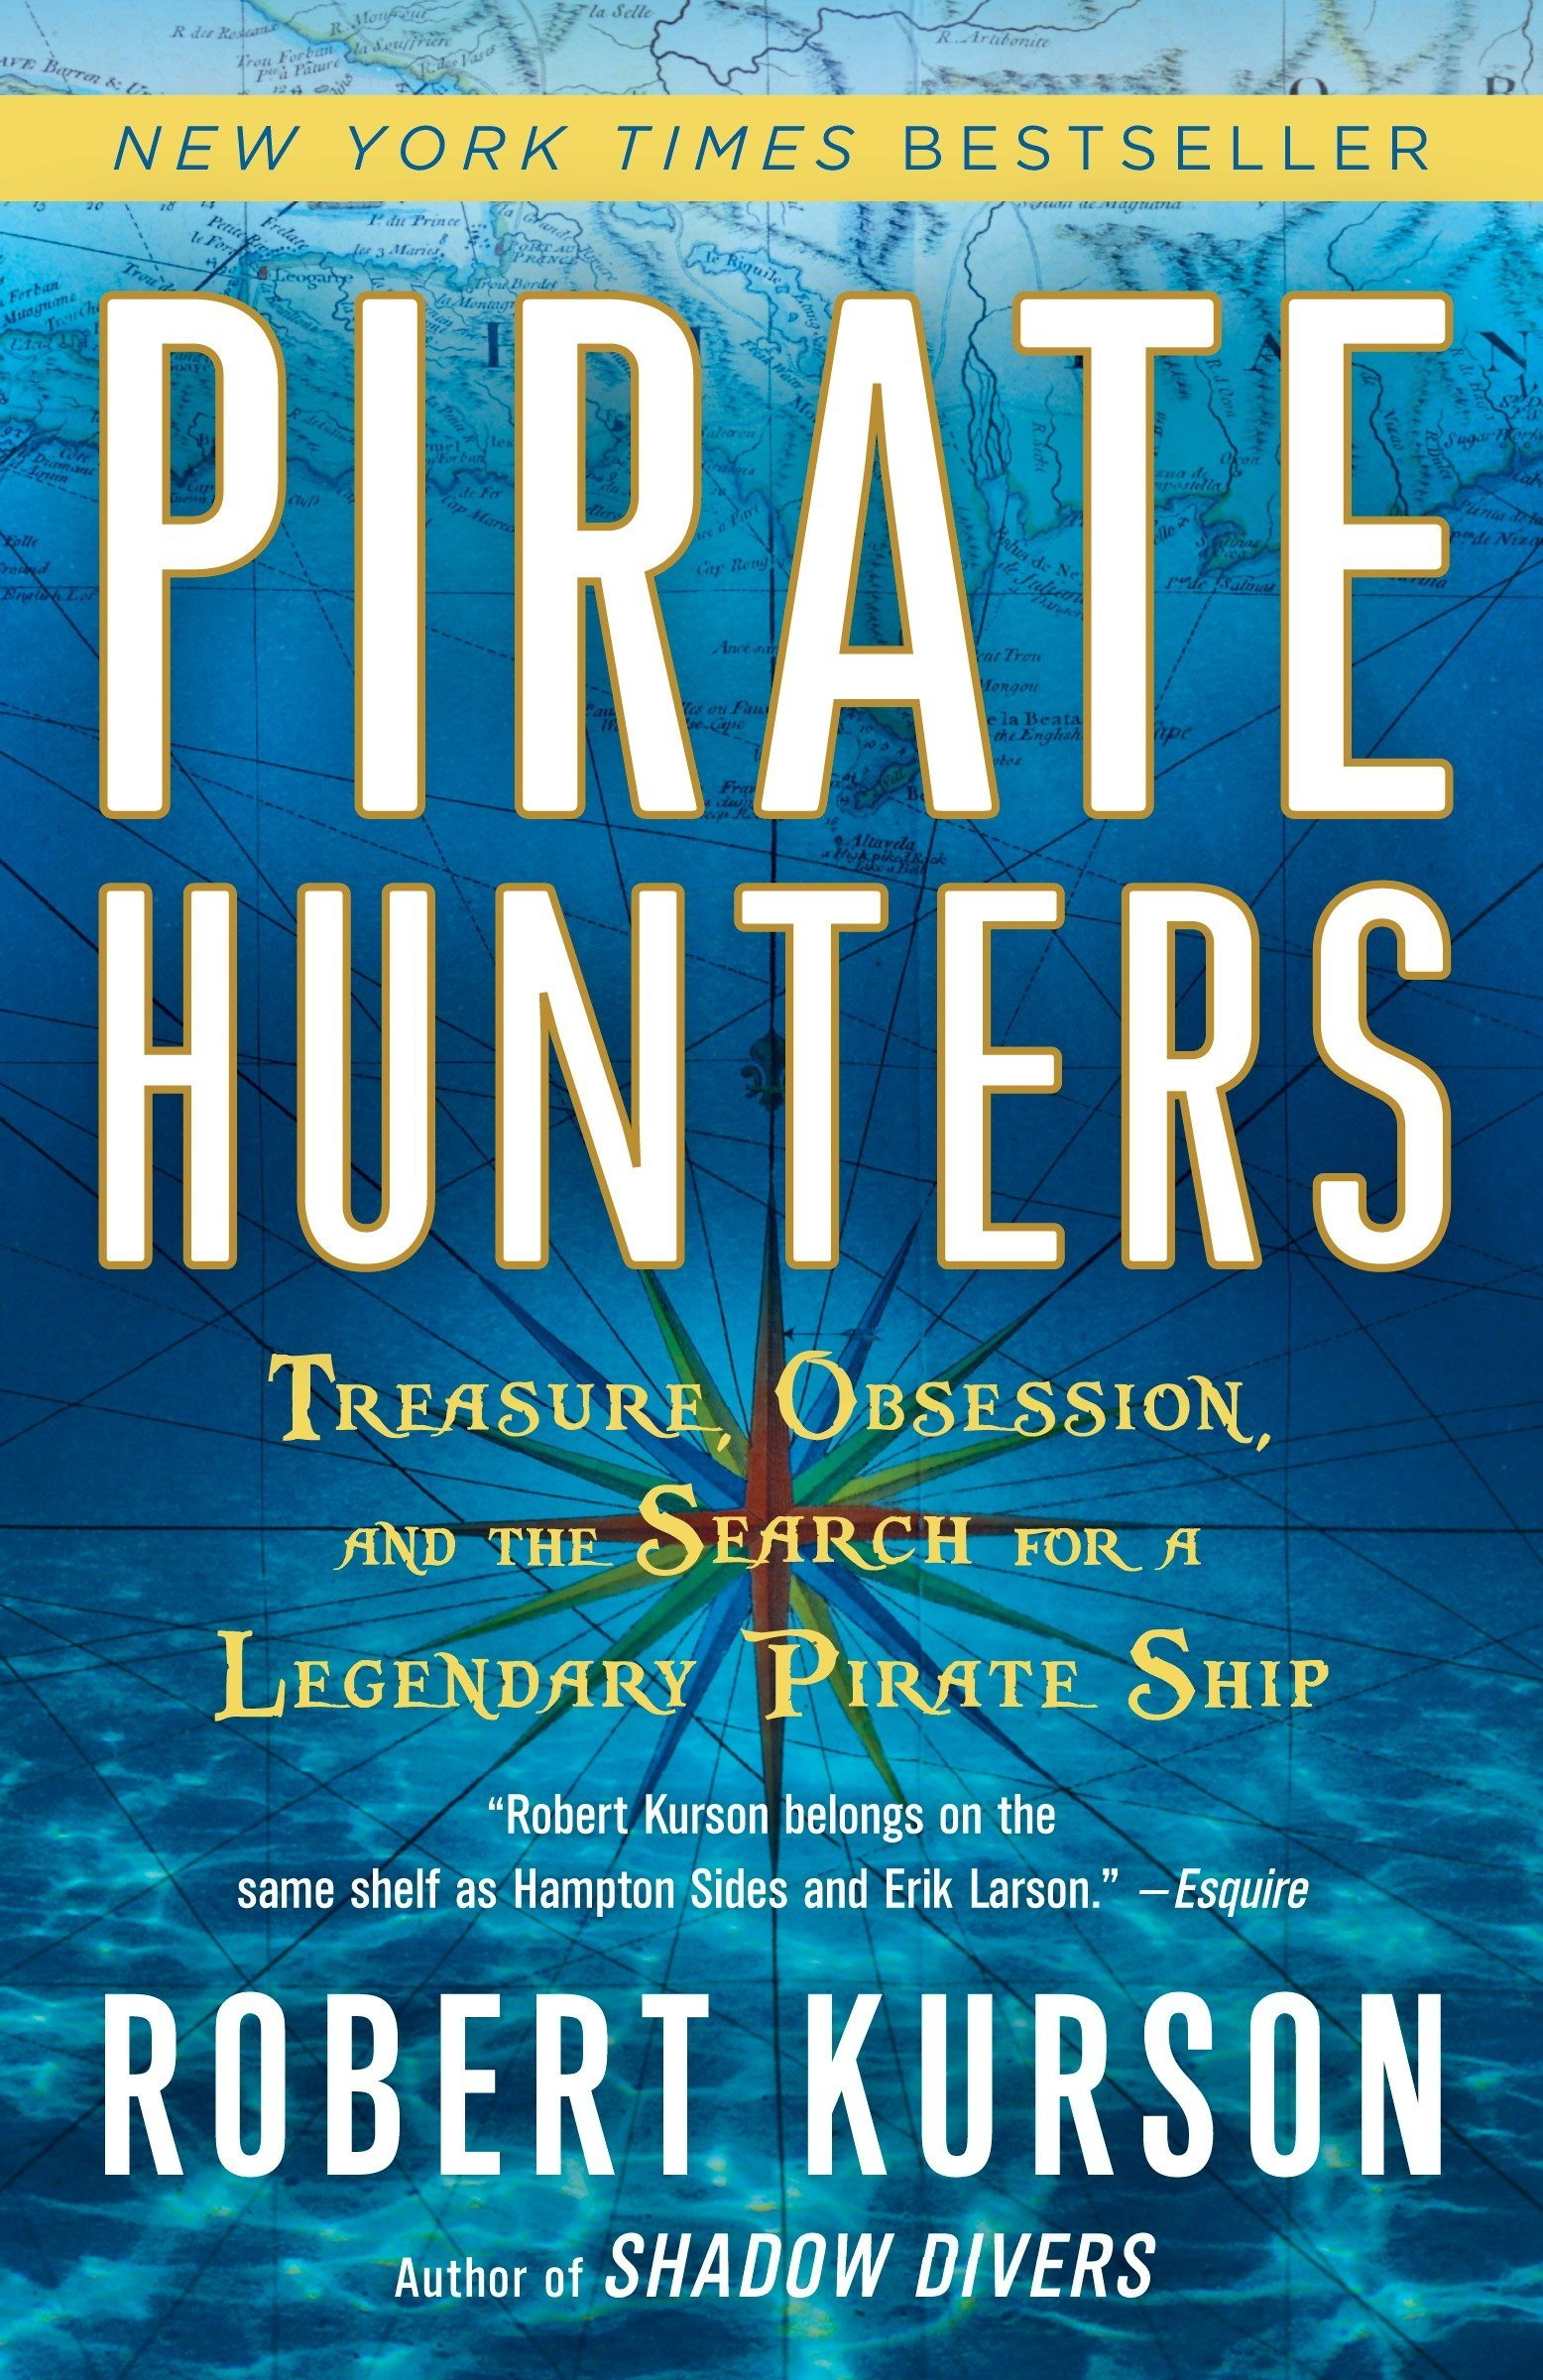 Pirate-Hunters:-treasure,-obsession,-and-the-search-for-a-legendary-pirate-ship-